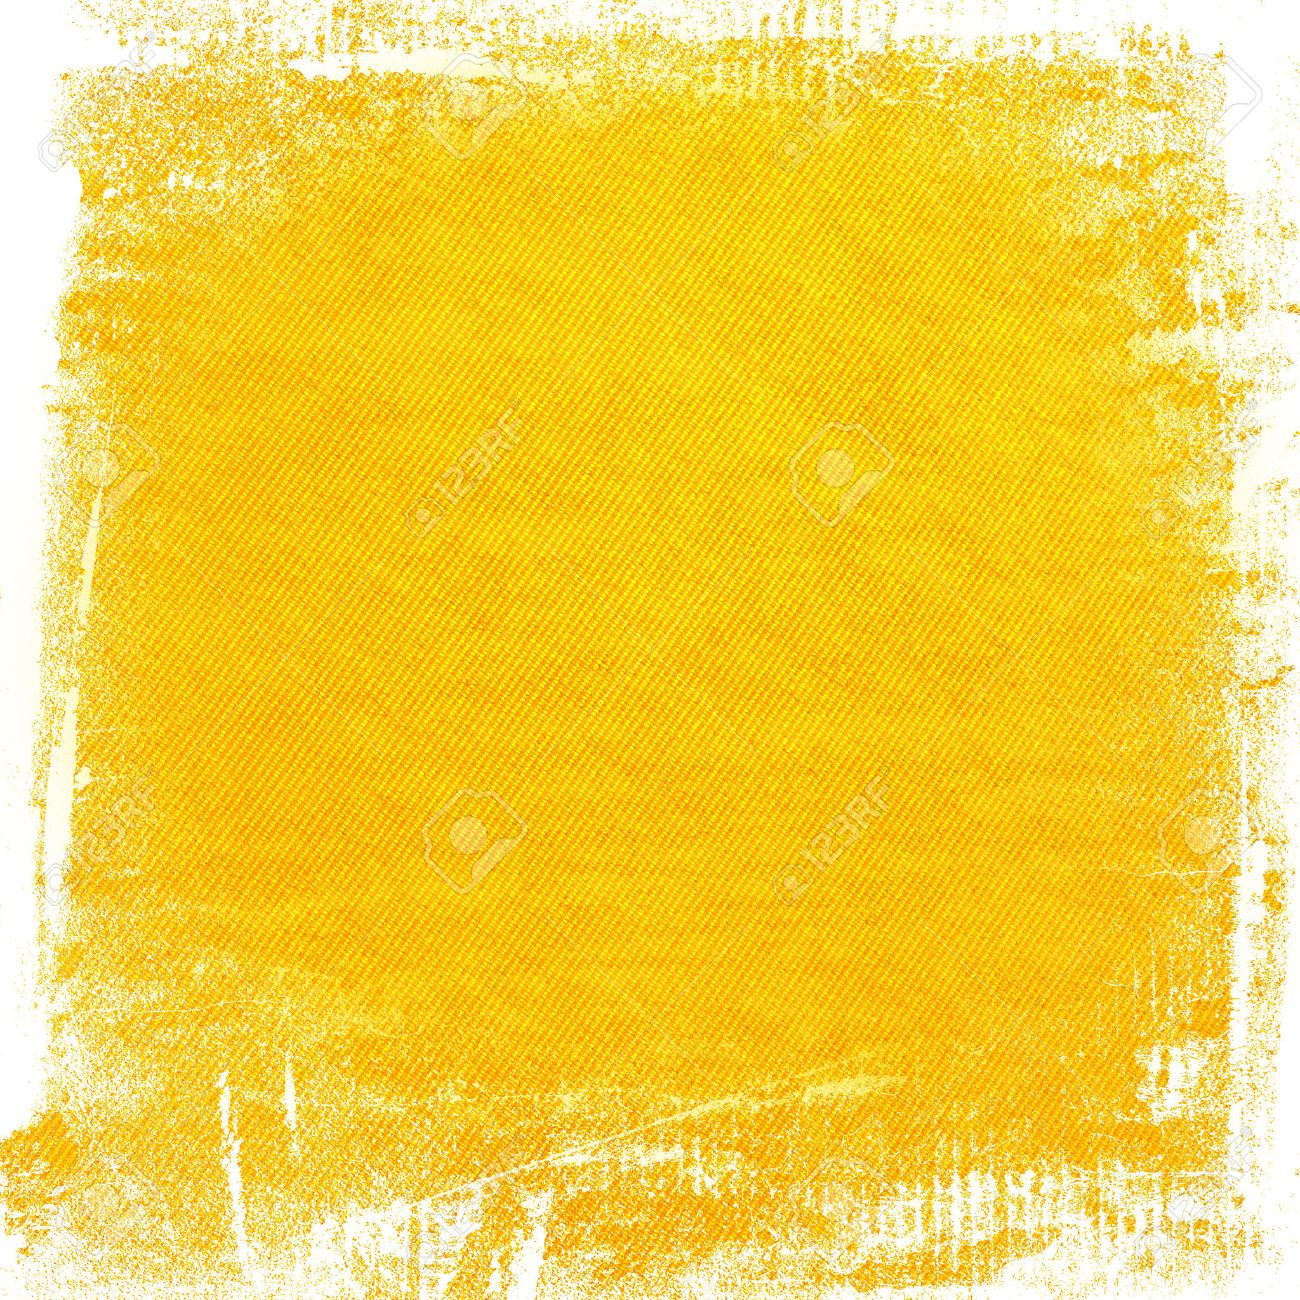 yellow watercolor paint grunge background canvas texture background